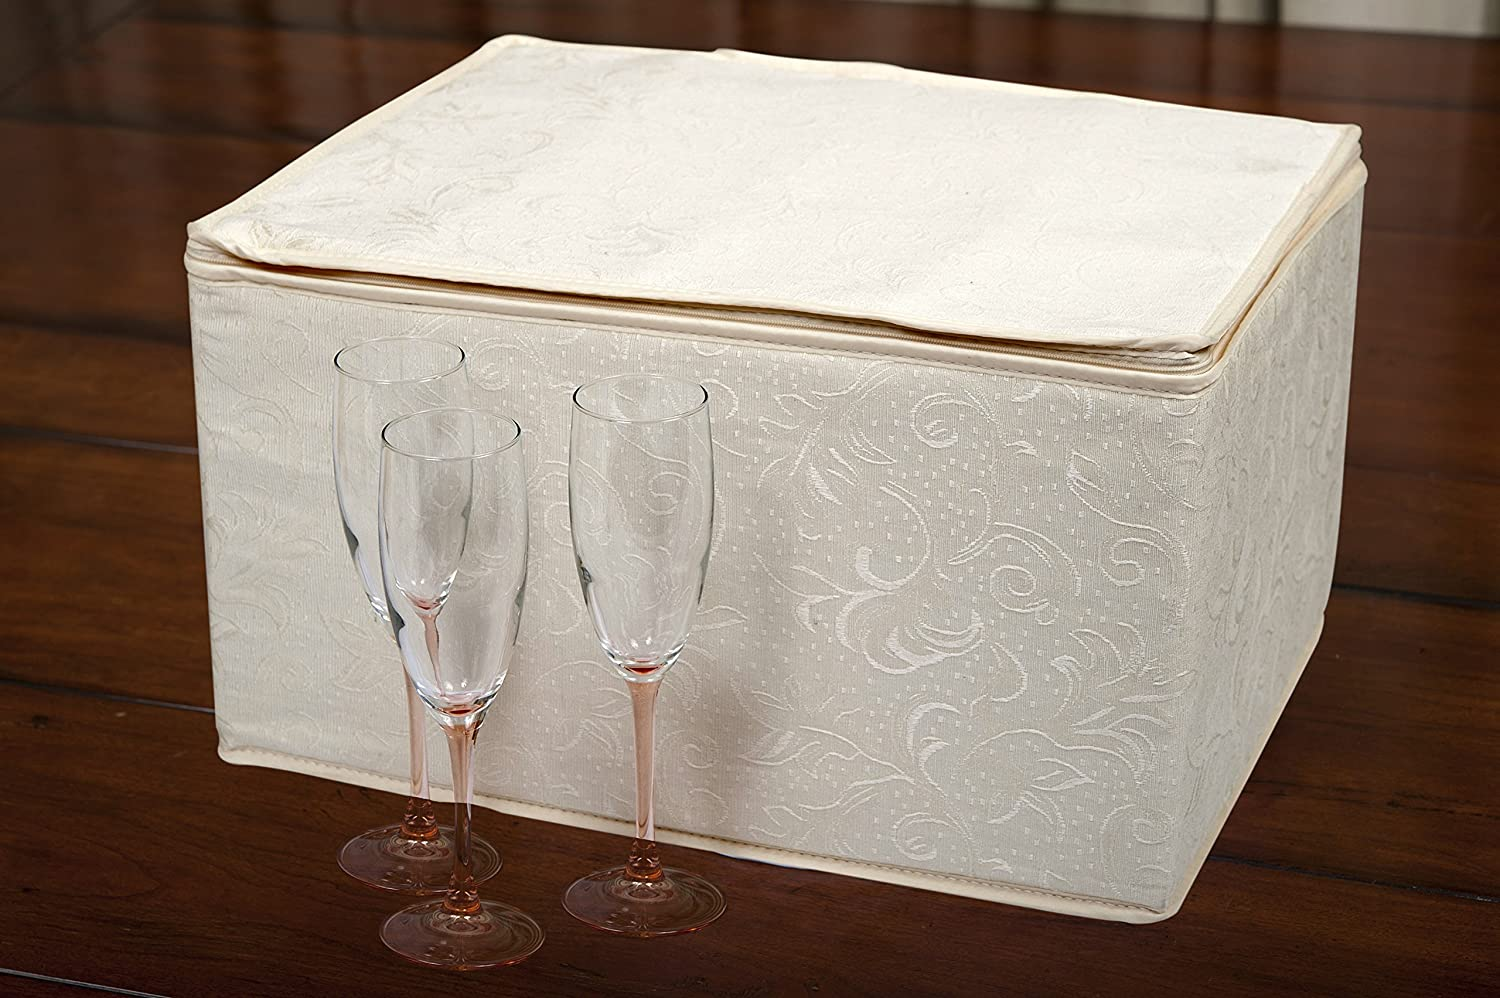 Marathon Housewares KW030009 Quilted Damask Stemware Storage Case, Holds 12 Wine Glasses or 24 Champagne Flutes, 8.5-Inches